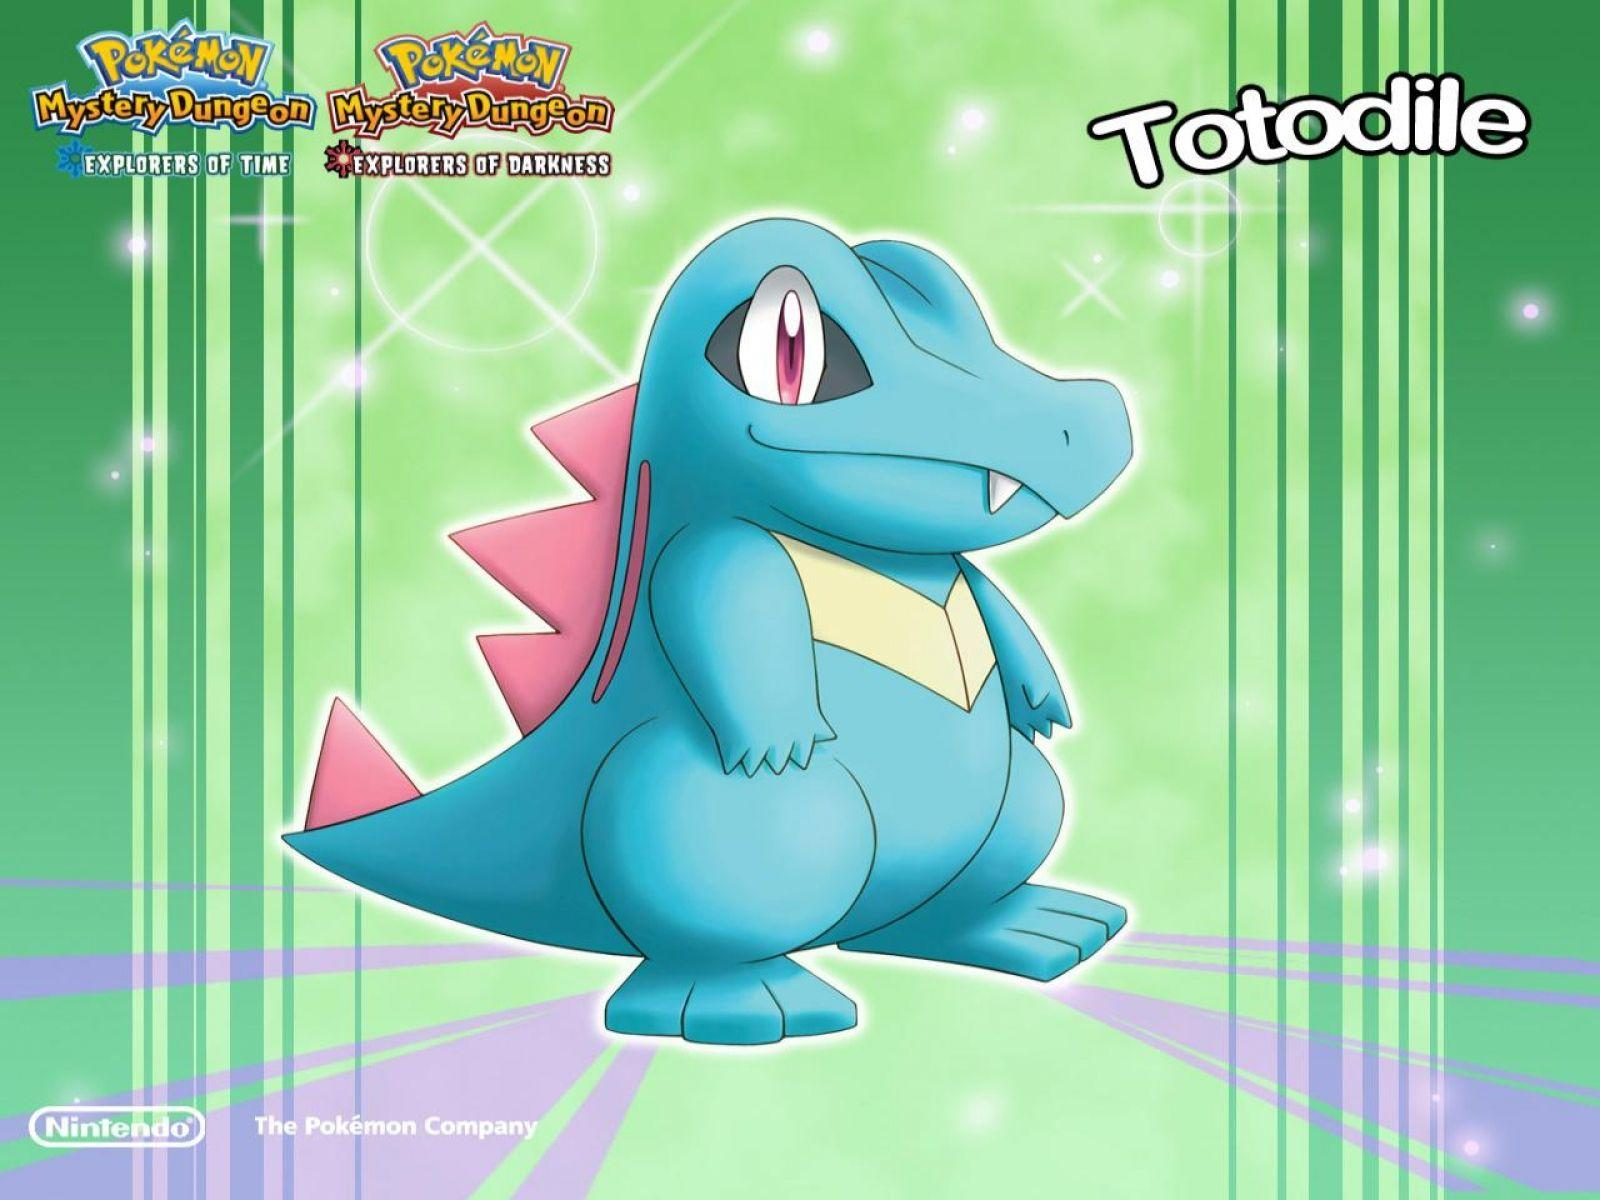 Totodile Wallpaper at Wallpaperist